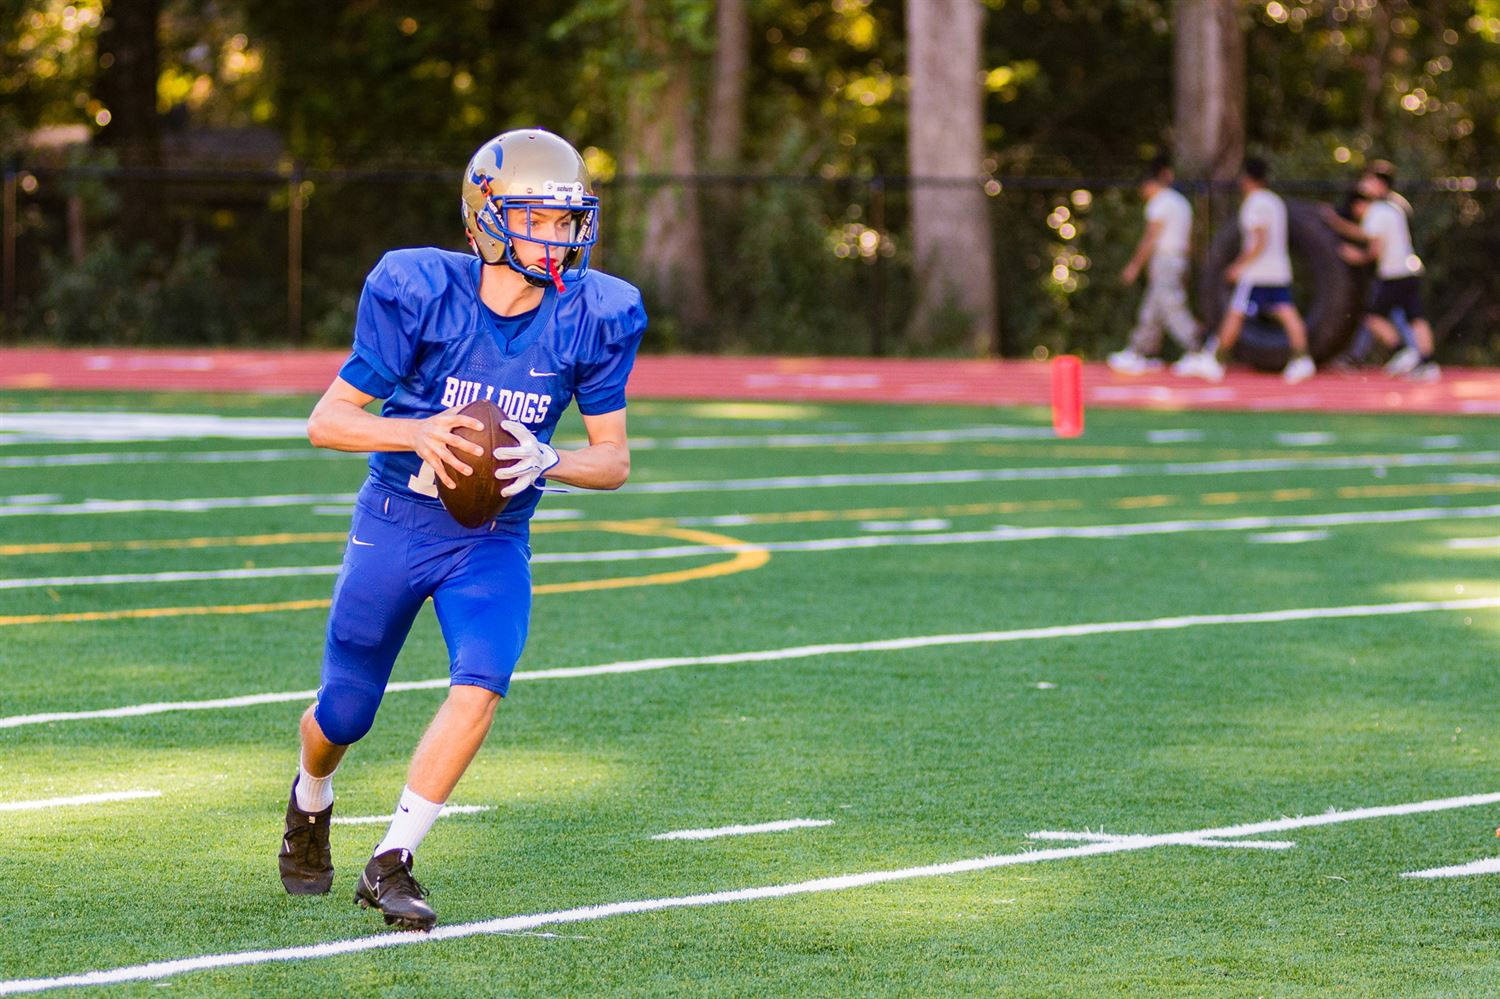 Quarterback Finn Allers playing football prior to his injury.